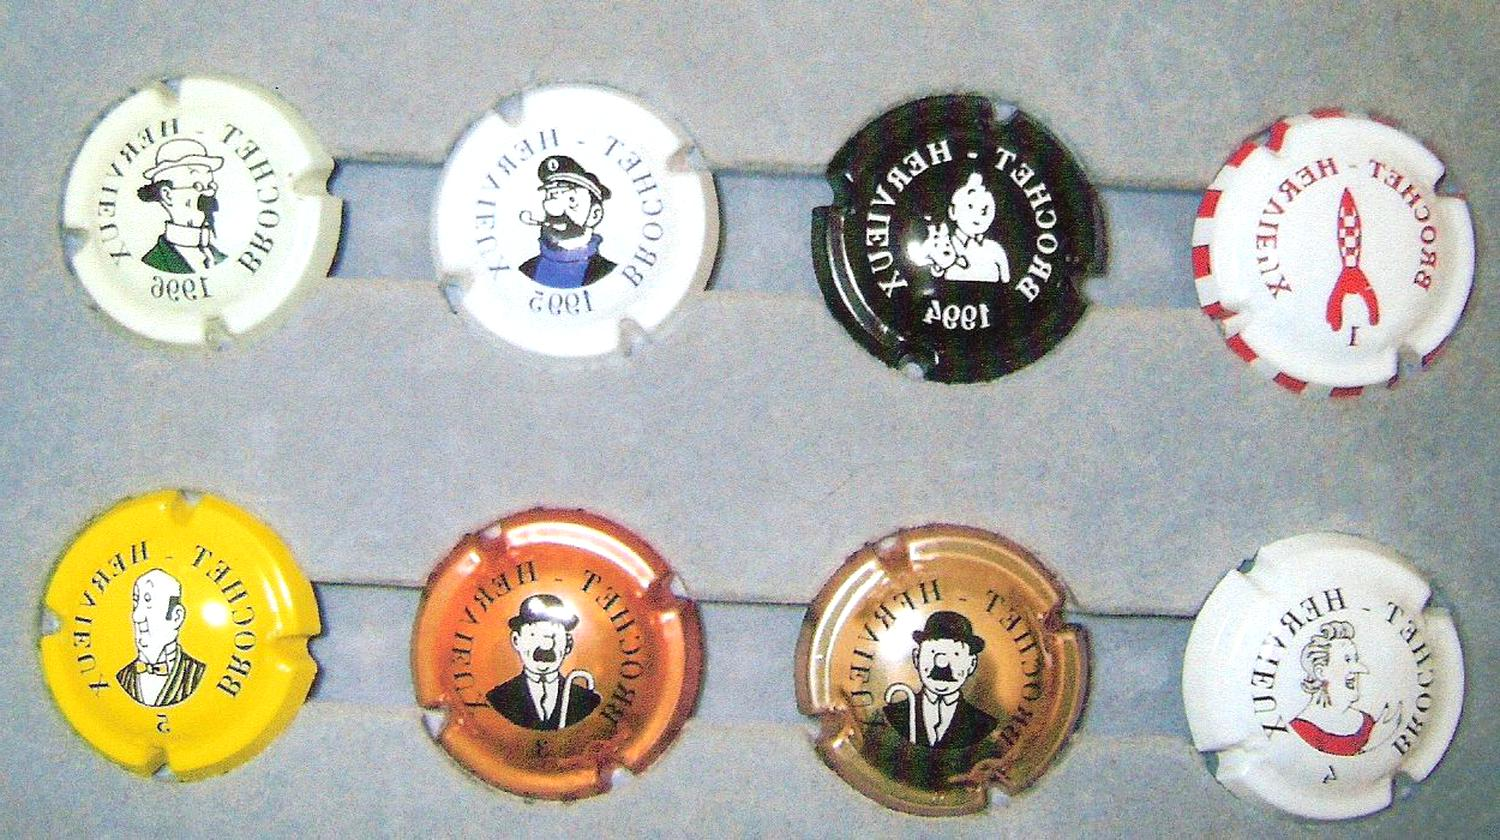 capsule champagne tintin d'occasion